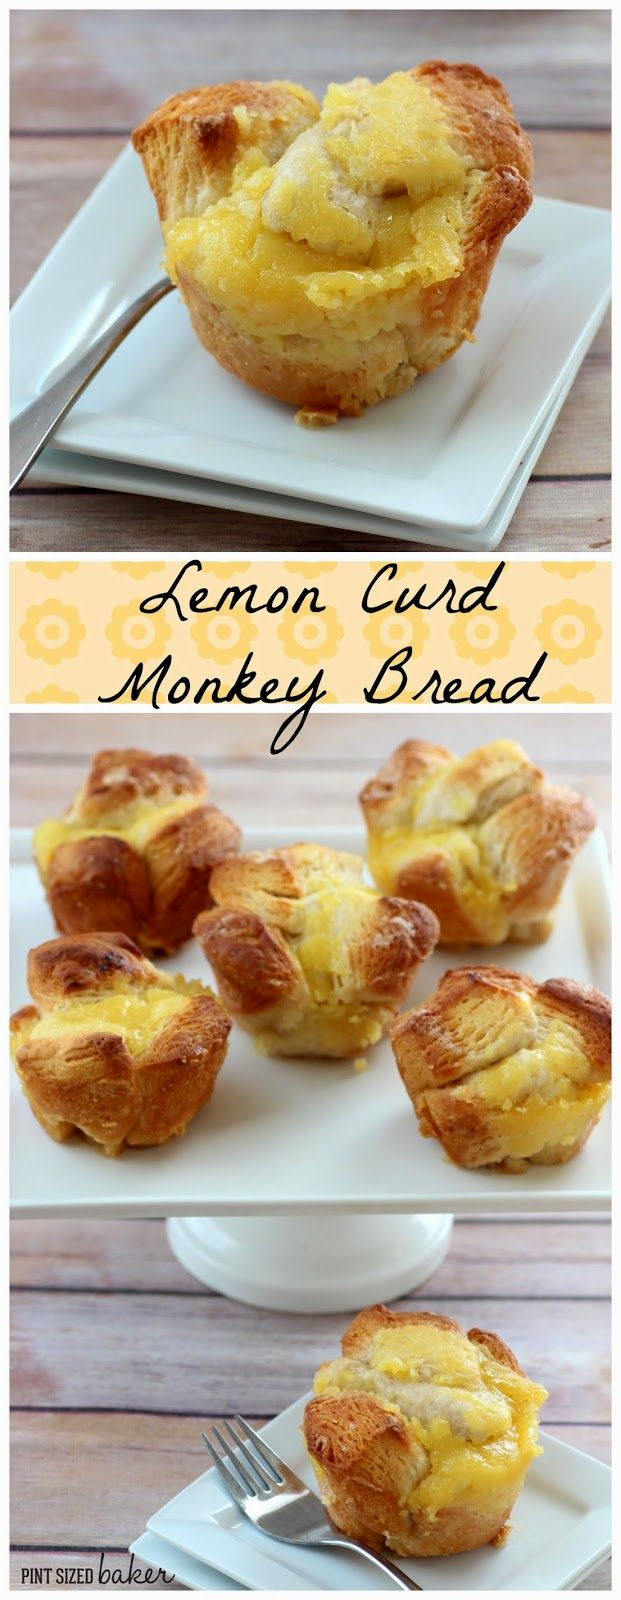 Lemon Curd Monkey Bread made with biscuit dough | Pint Sized Baker #lemon #monkeybread